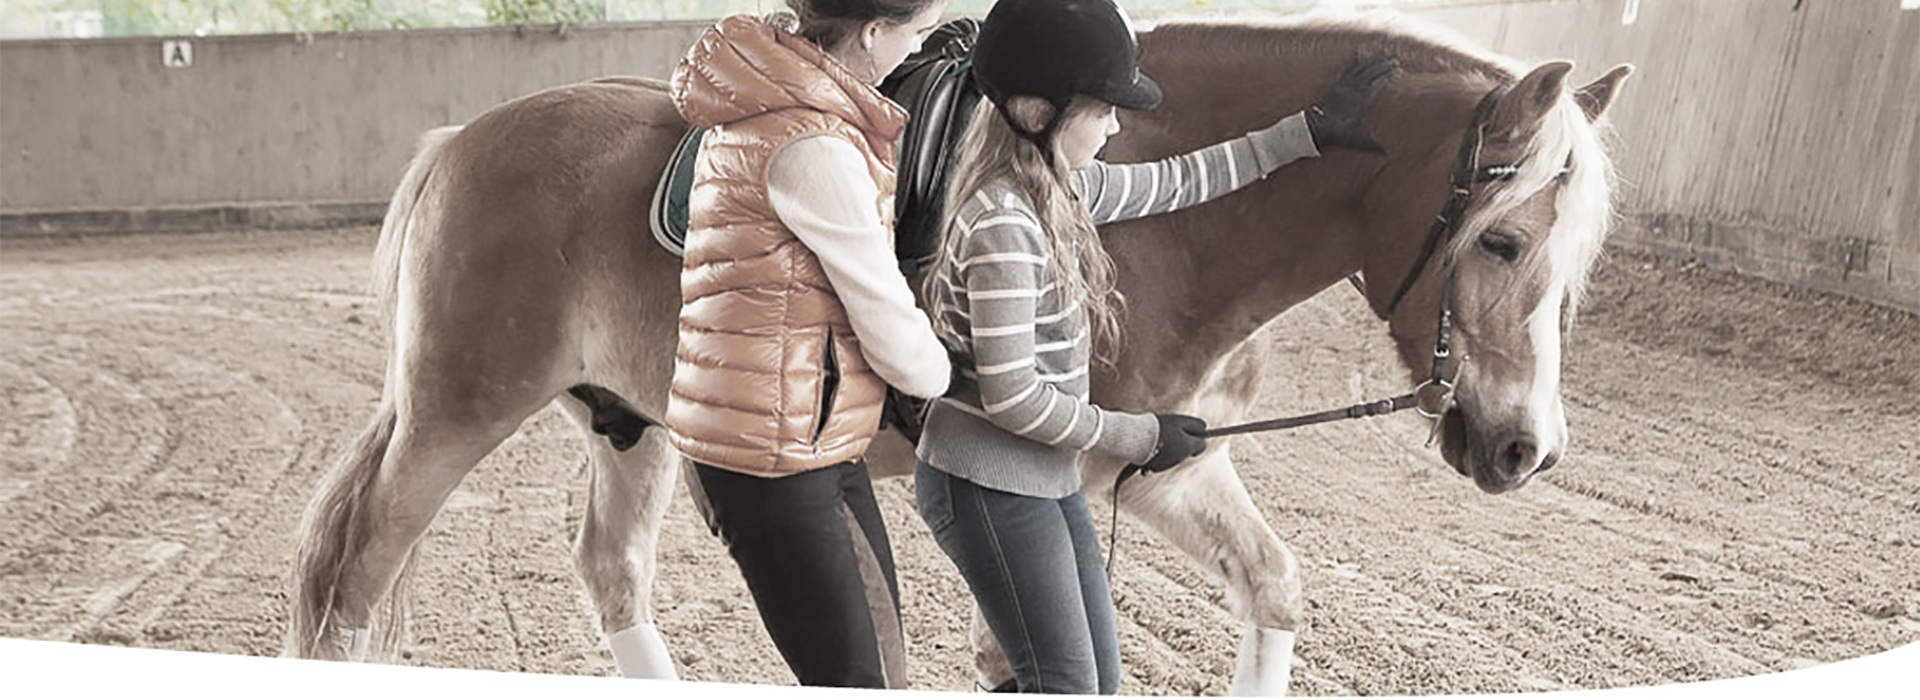 Connected-Riding-Kurse-Kurs-Kinder-Angie-Kurs